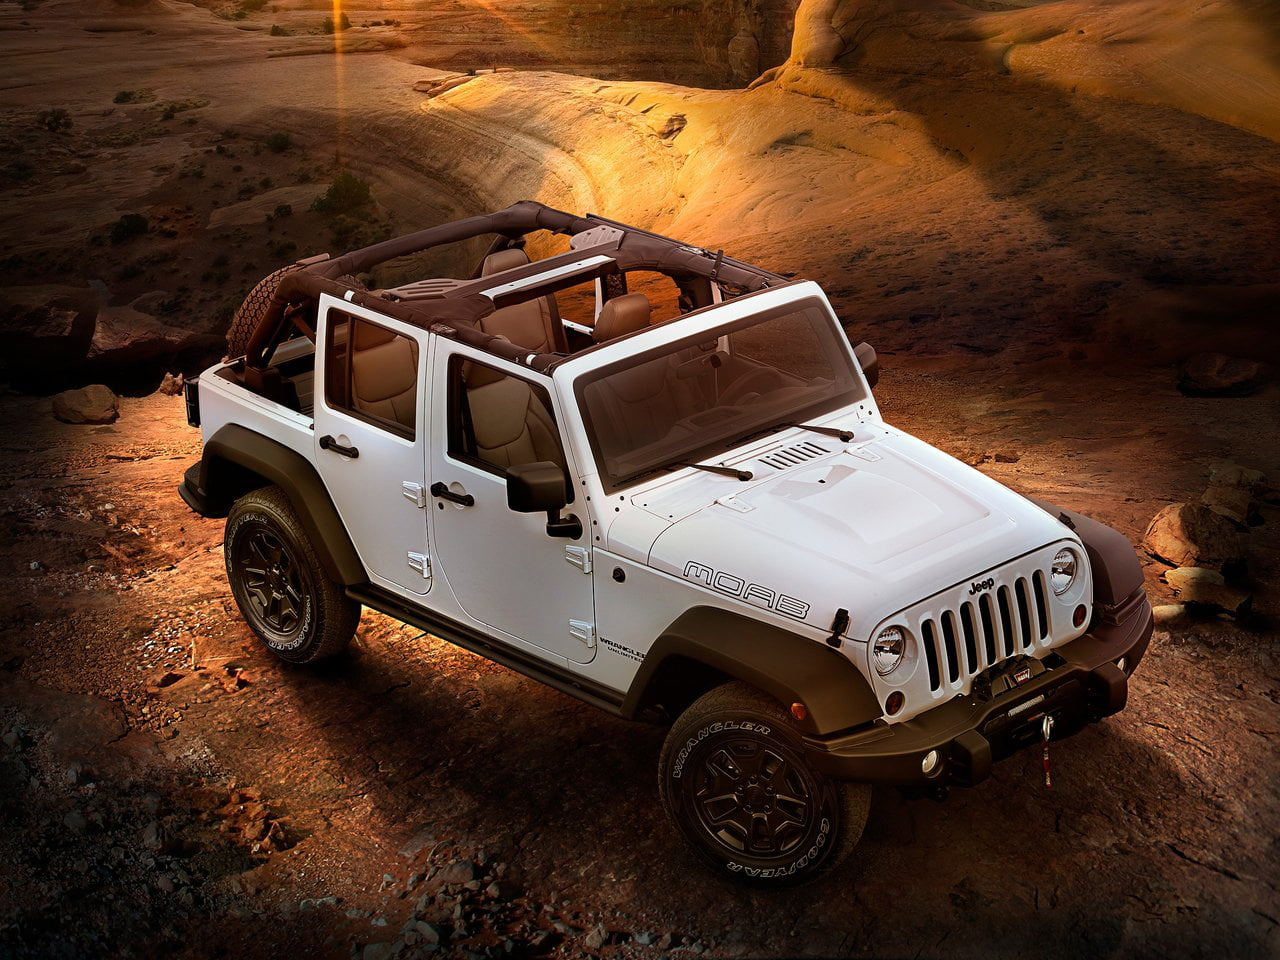 jeep india price list price of wrangler price of grand cherokee in india. Black Bedroom Furniture Sets. Home Design Ideas